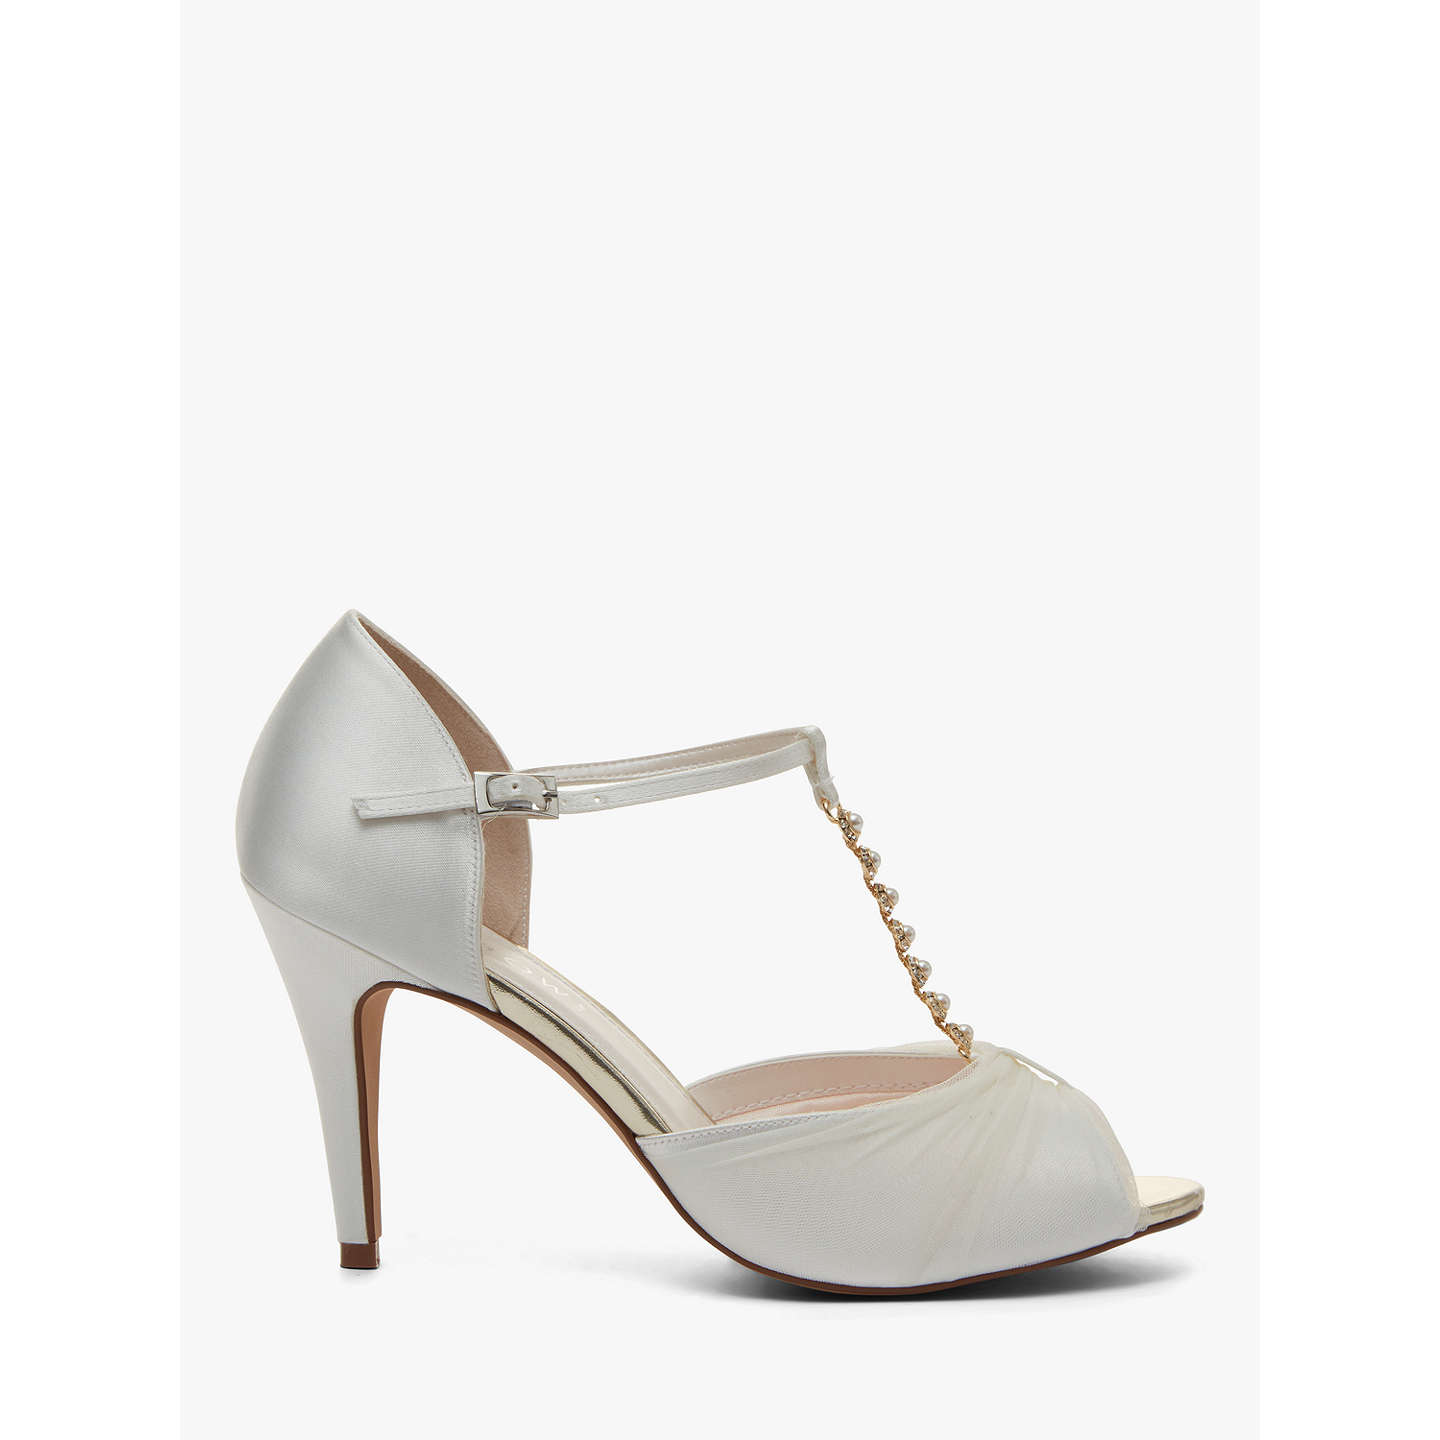 BuyRainbow Club Adrianna Satin and Tulle Stiletto Heel Sandals, Ivory, 3 Online at johnlewis.com